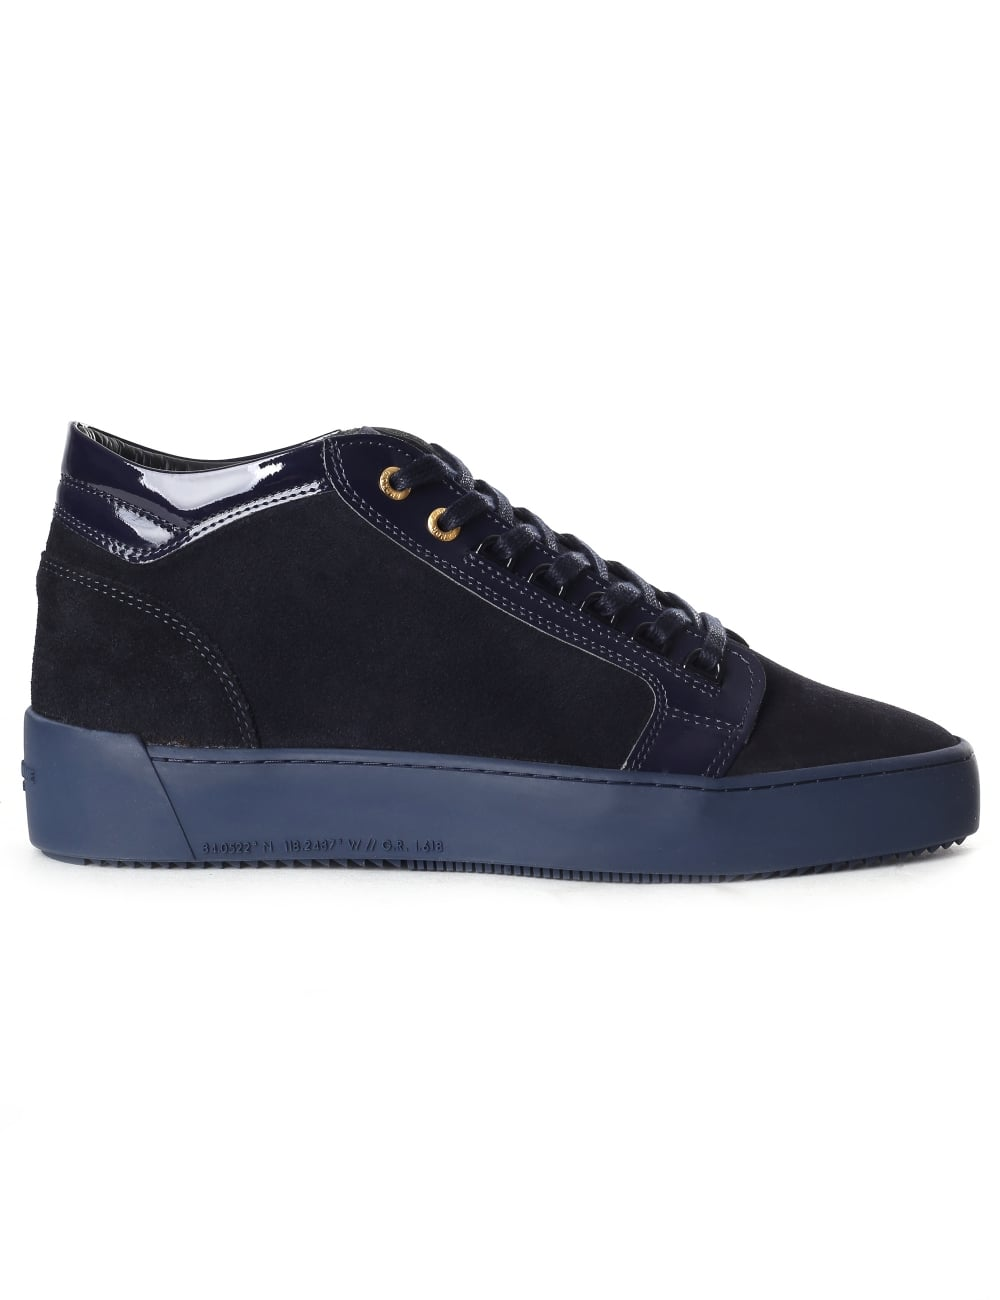 5df272ee478 Android Homme Mid Propulsion Men s Suede Patent Trainer